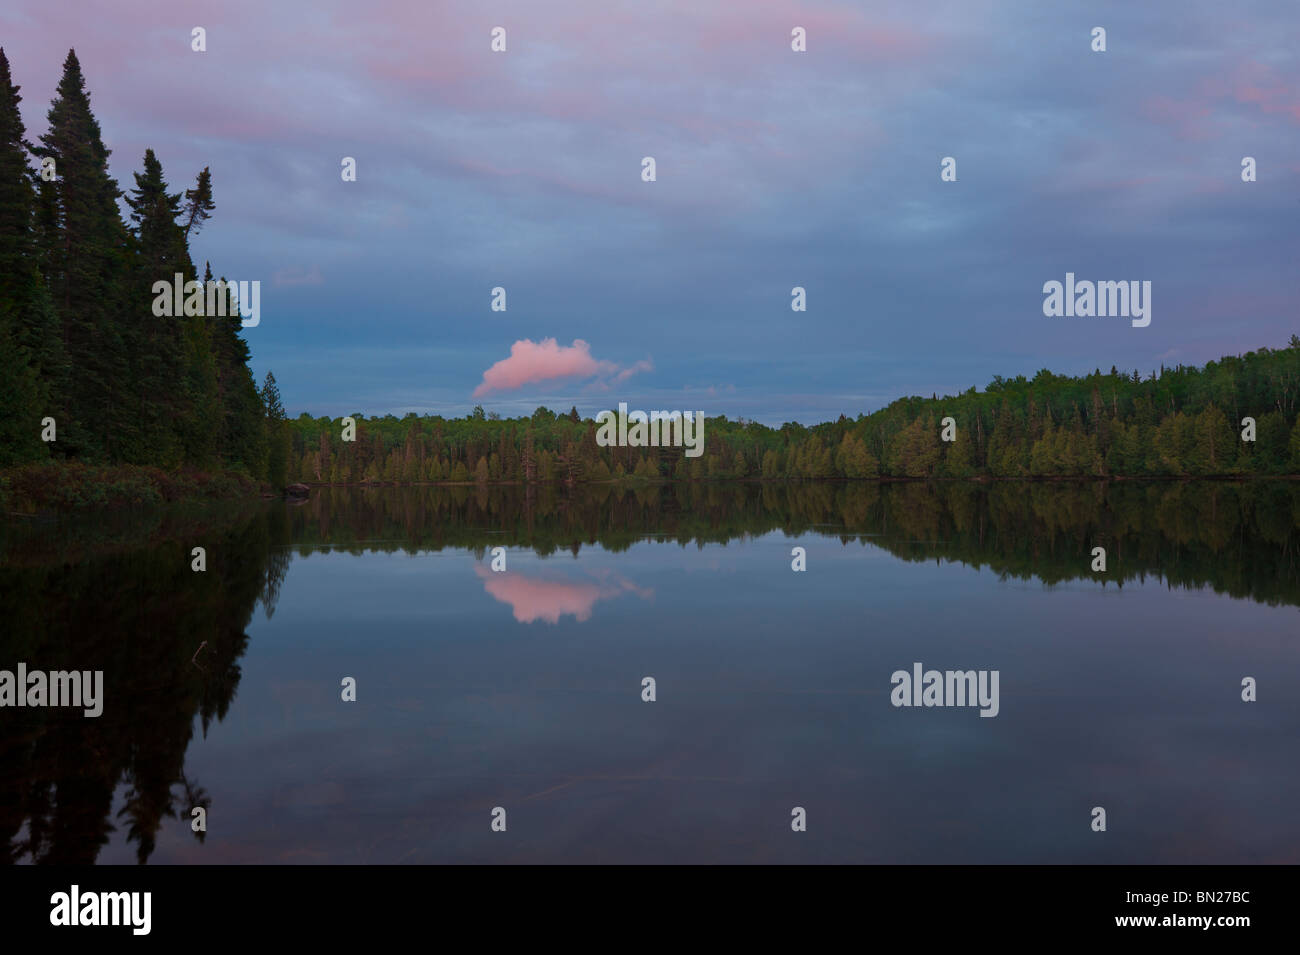 EVENING COLORS ON WHALE LAKE BOUNDARY WATERS CANOE AREA - Stock Image